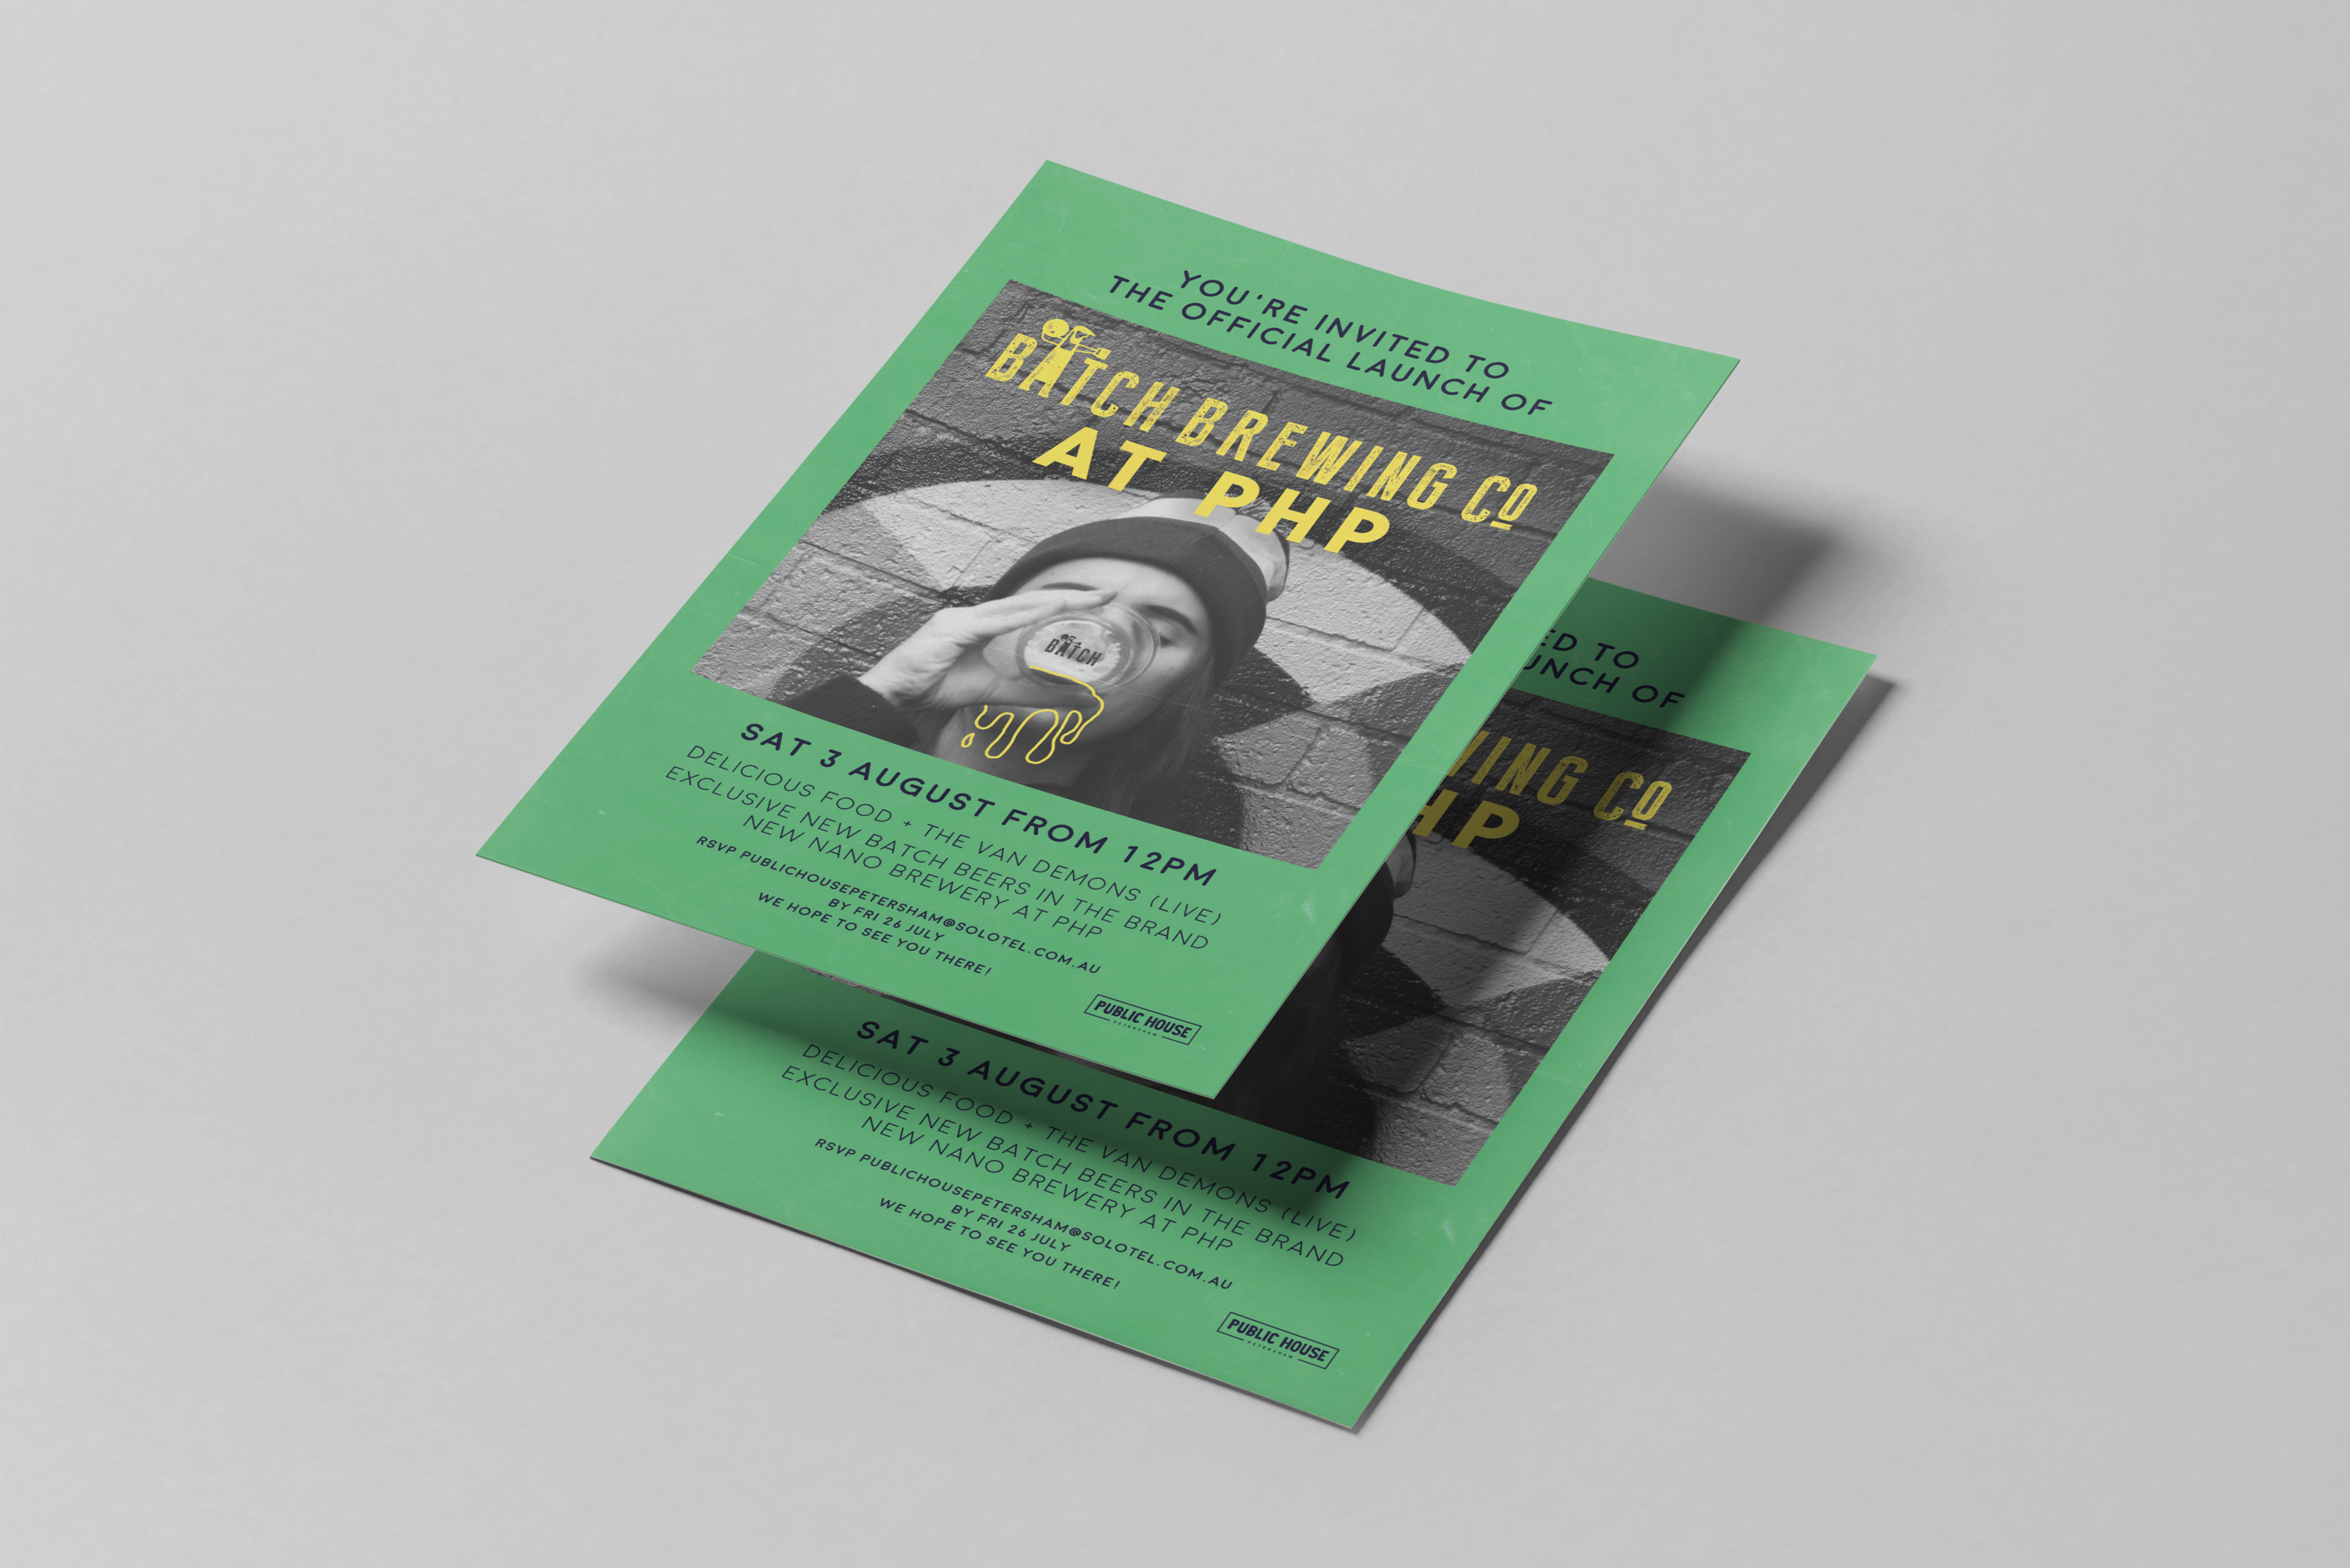 invitation design for an event at public house petersham